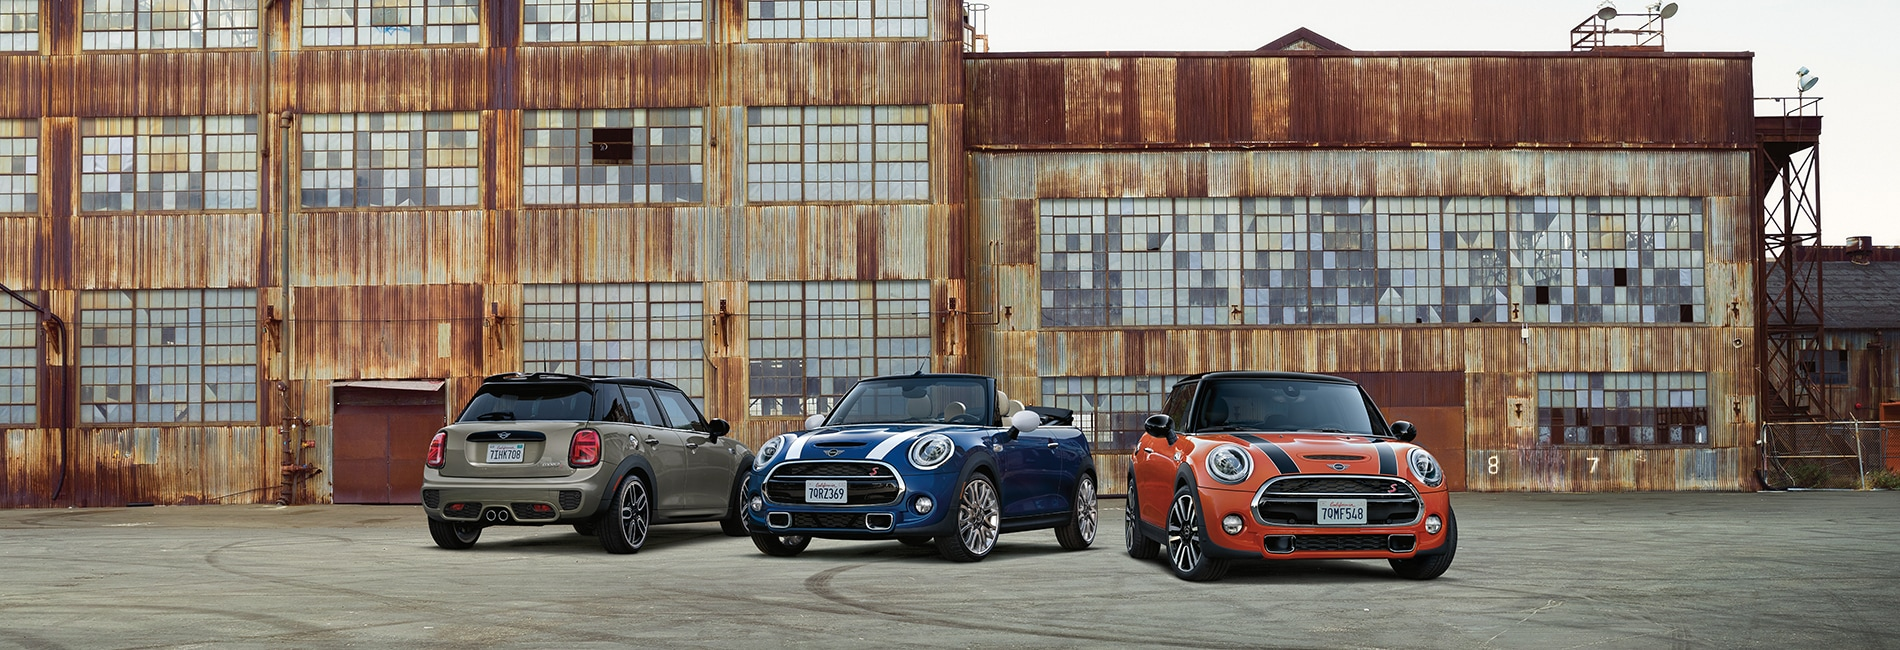 MINI Hardtop 4 Door Interior and Exterior Vehicle Features